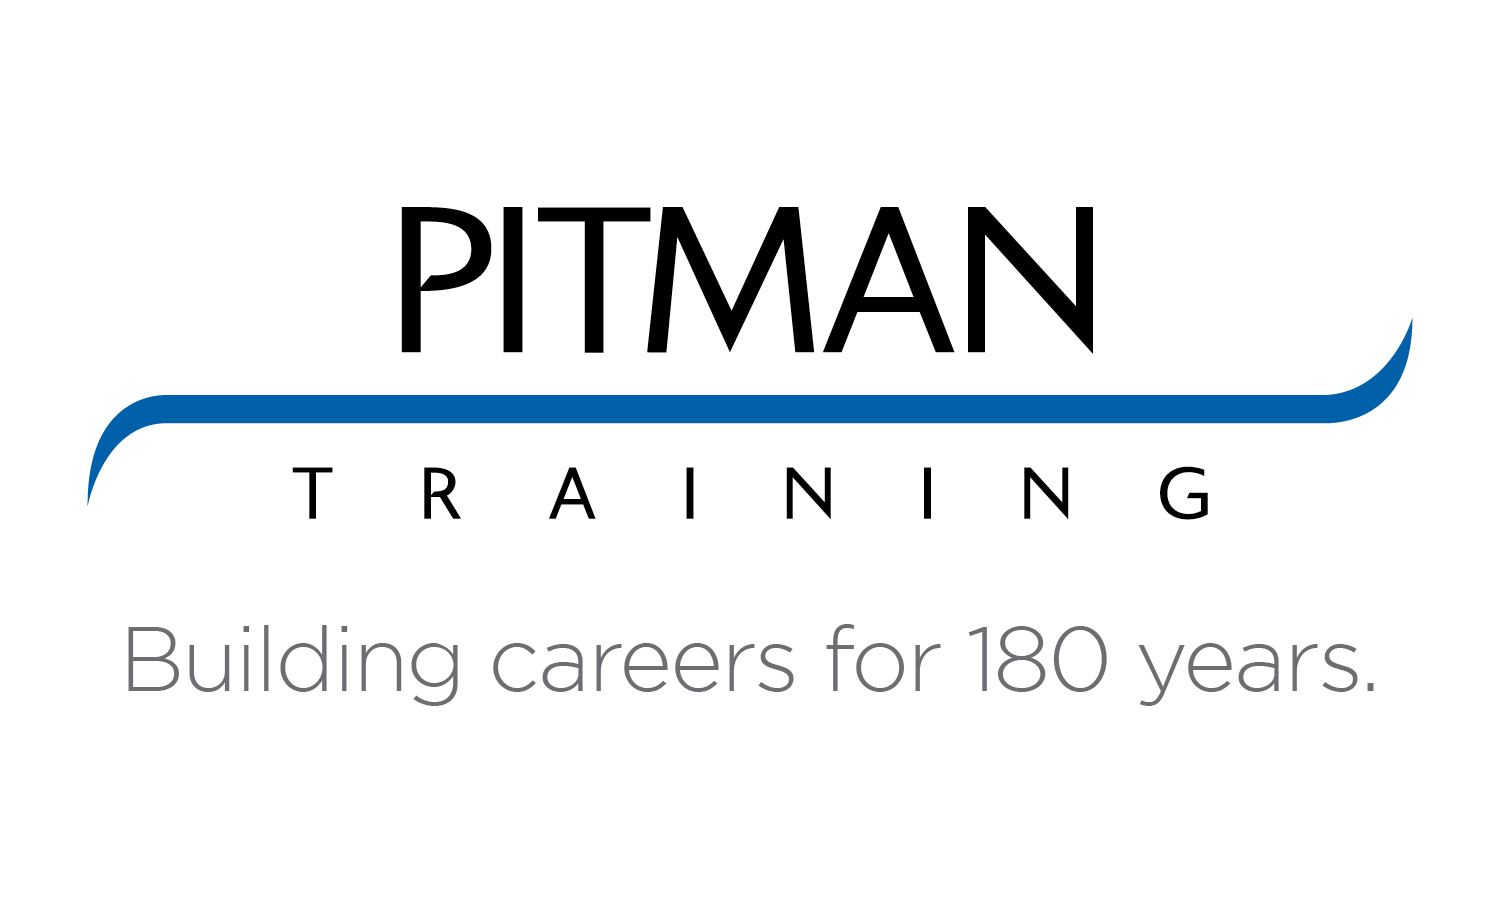 Pitman Training Ireland